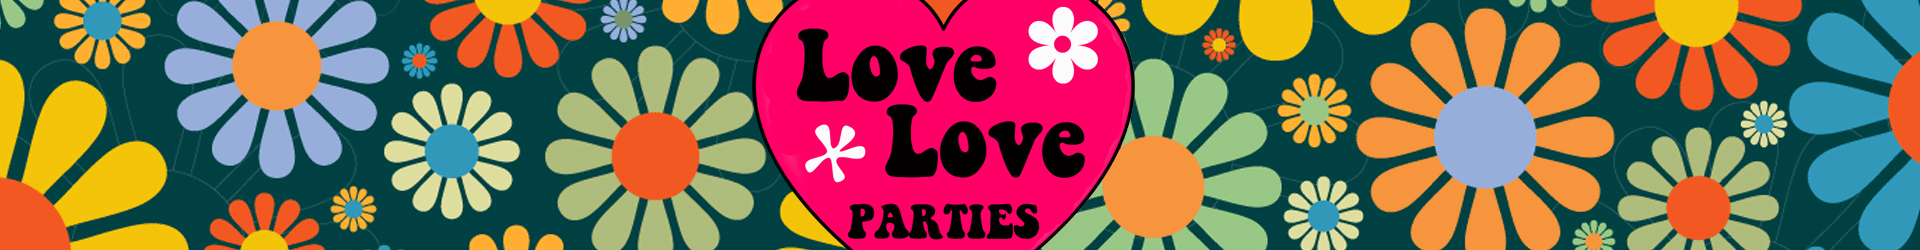 Love Love Parties - Sex Toy Party, Passion Parties, Bachelorette Parties in NYC, New York, New Jersey